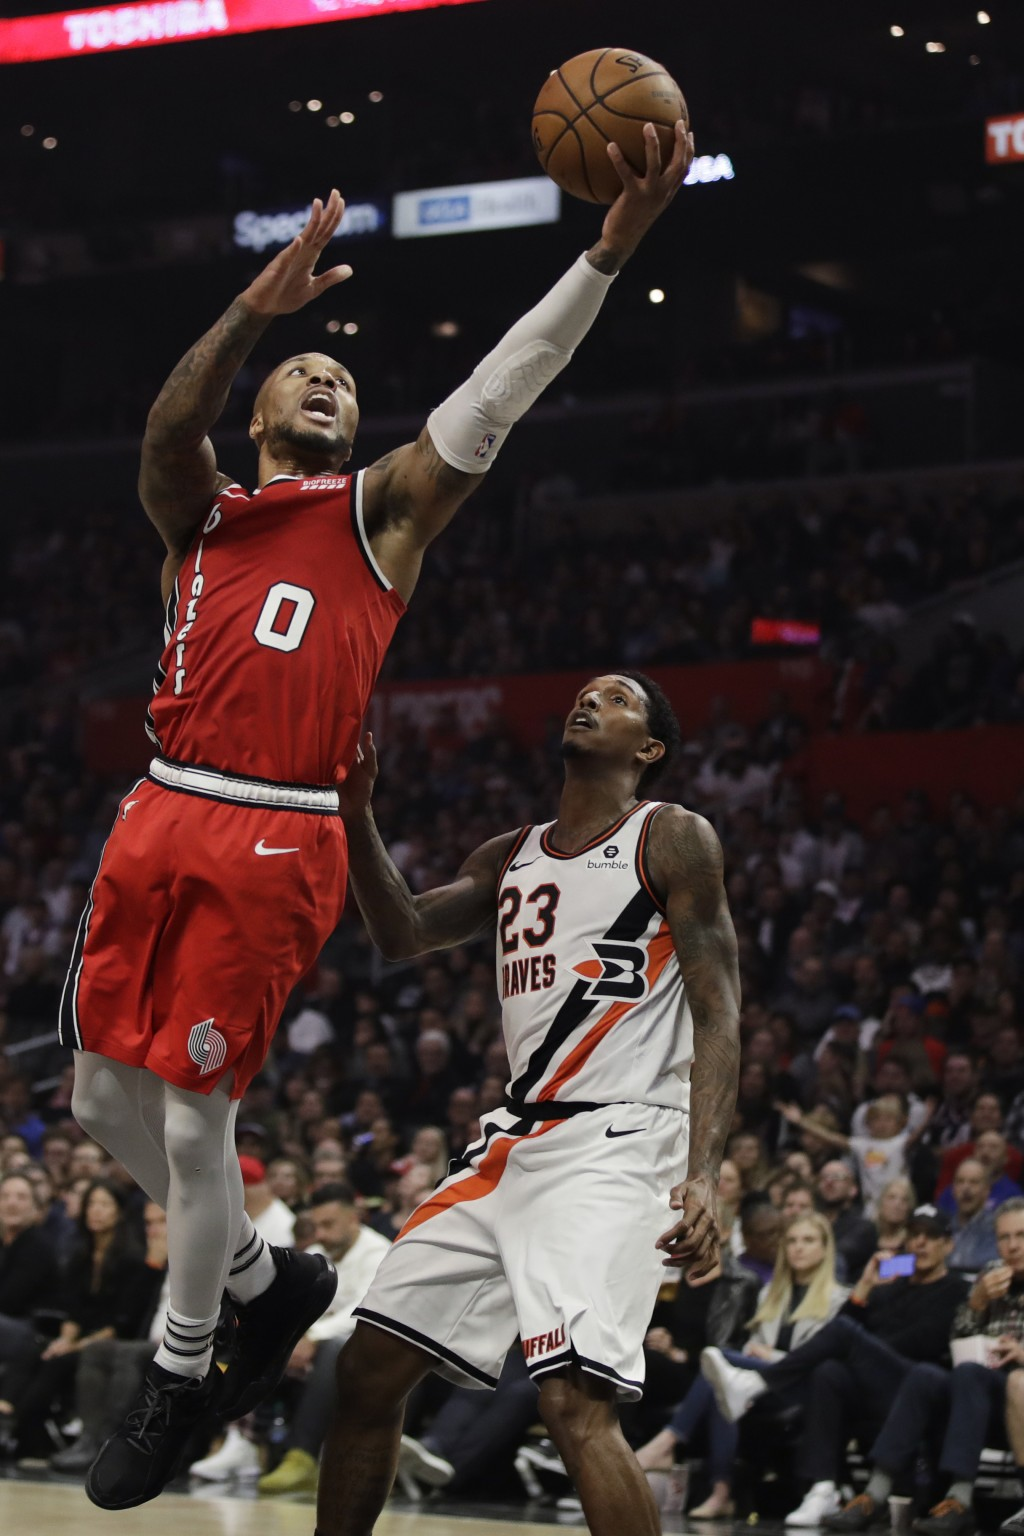 Portland Trail Blazers' Damian Lillard (0) scores past Los Angeles Clippers' Lou Williams (23) during the first half of an NBA basketball game Thursda...